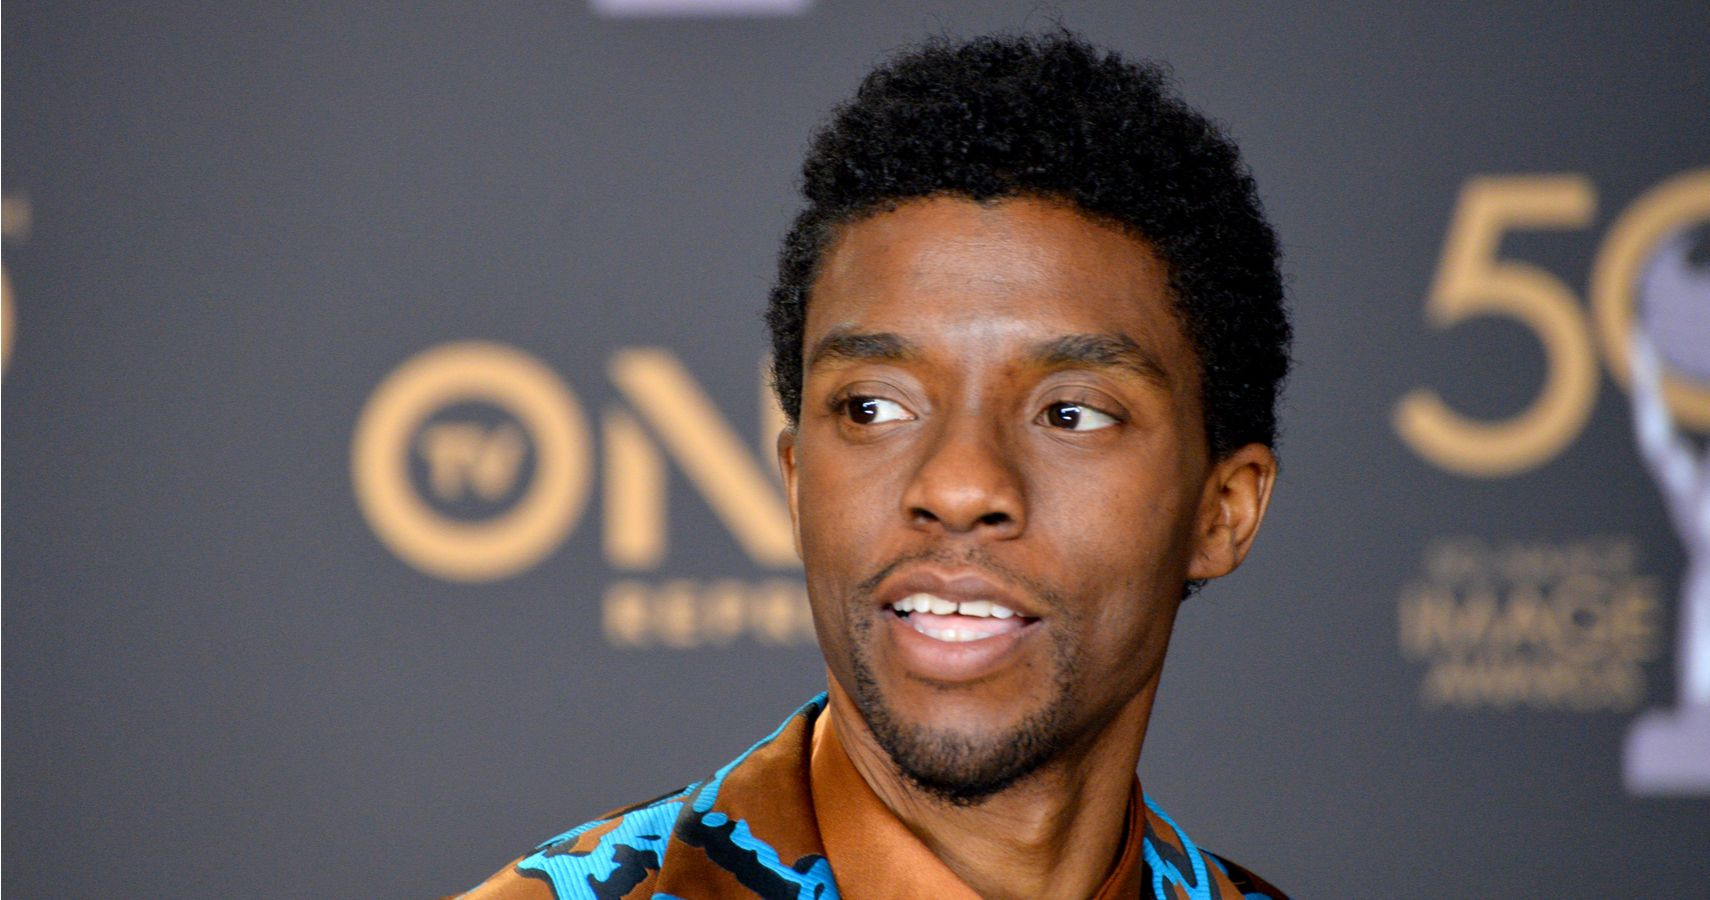 Fans React To 'Black Panther' Honoring Chadwick Boseman With New Movie's Title